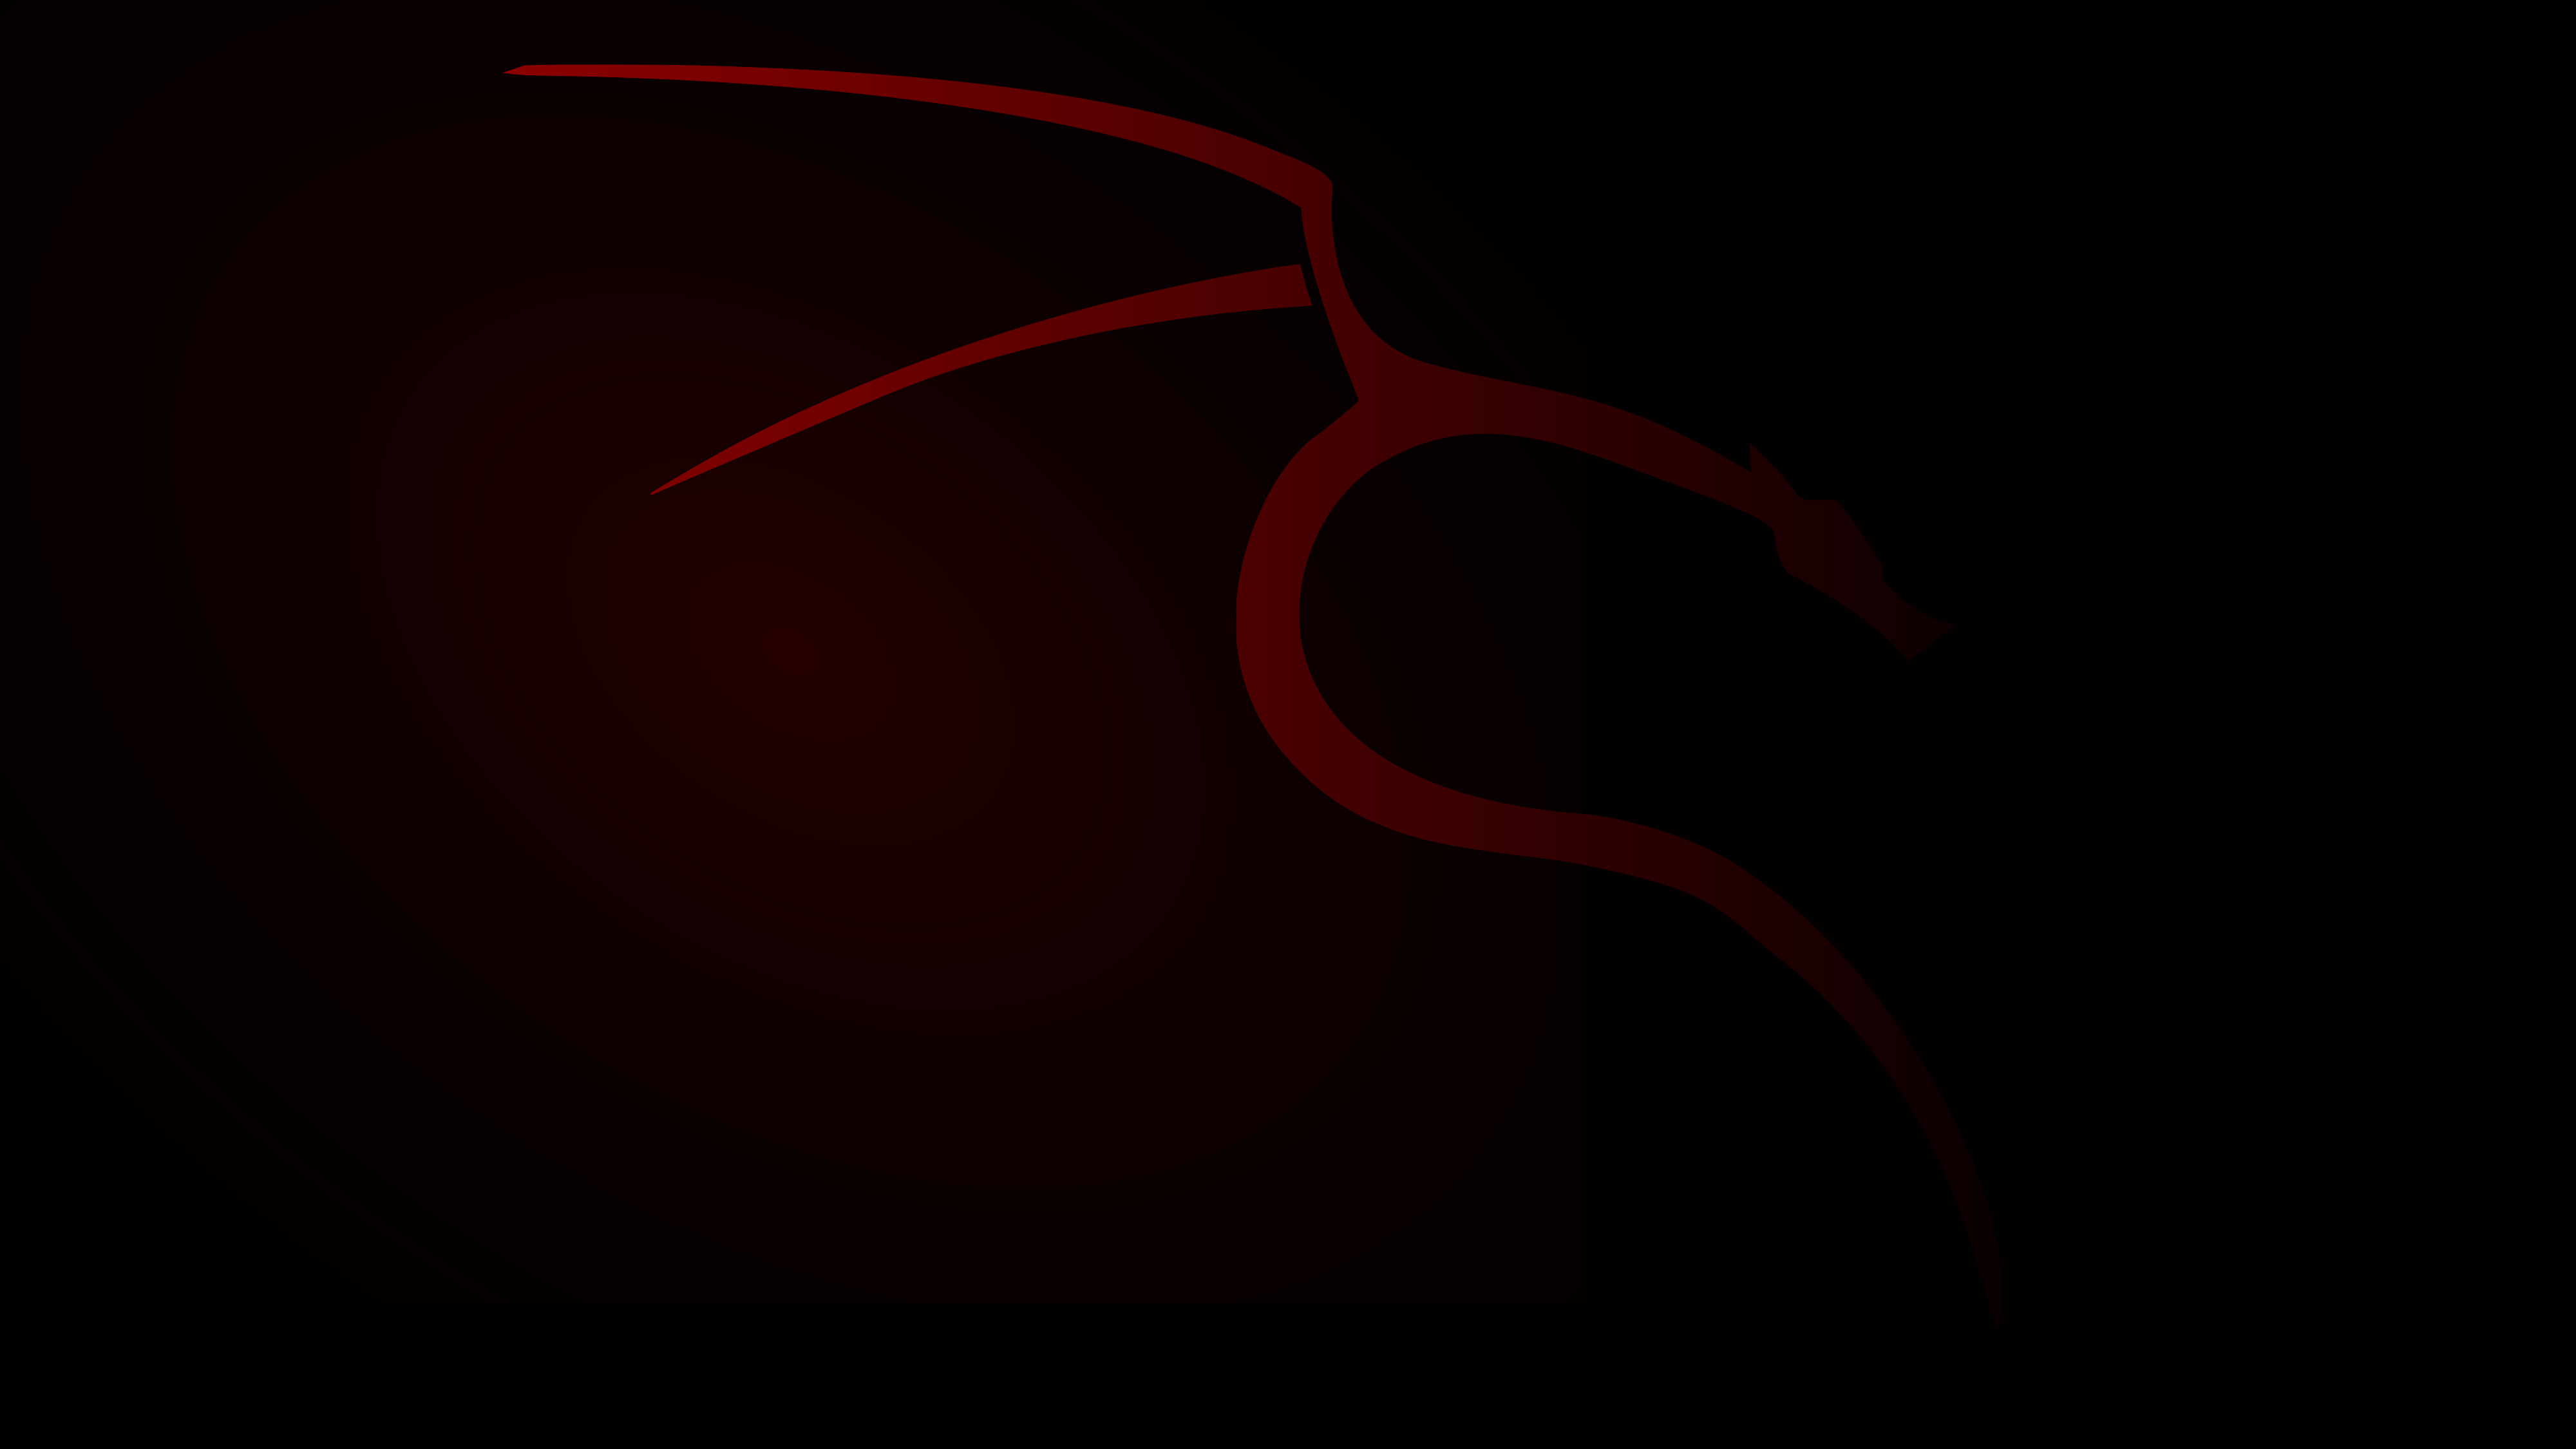 10 awesome minimalist linux wallpapers ib computing - Kali linux wallpaper download ...